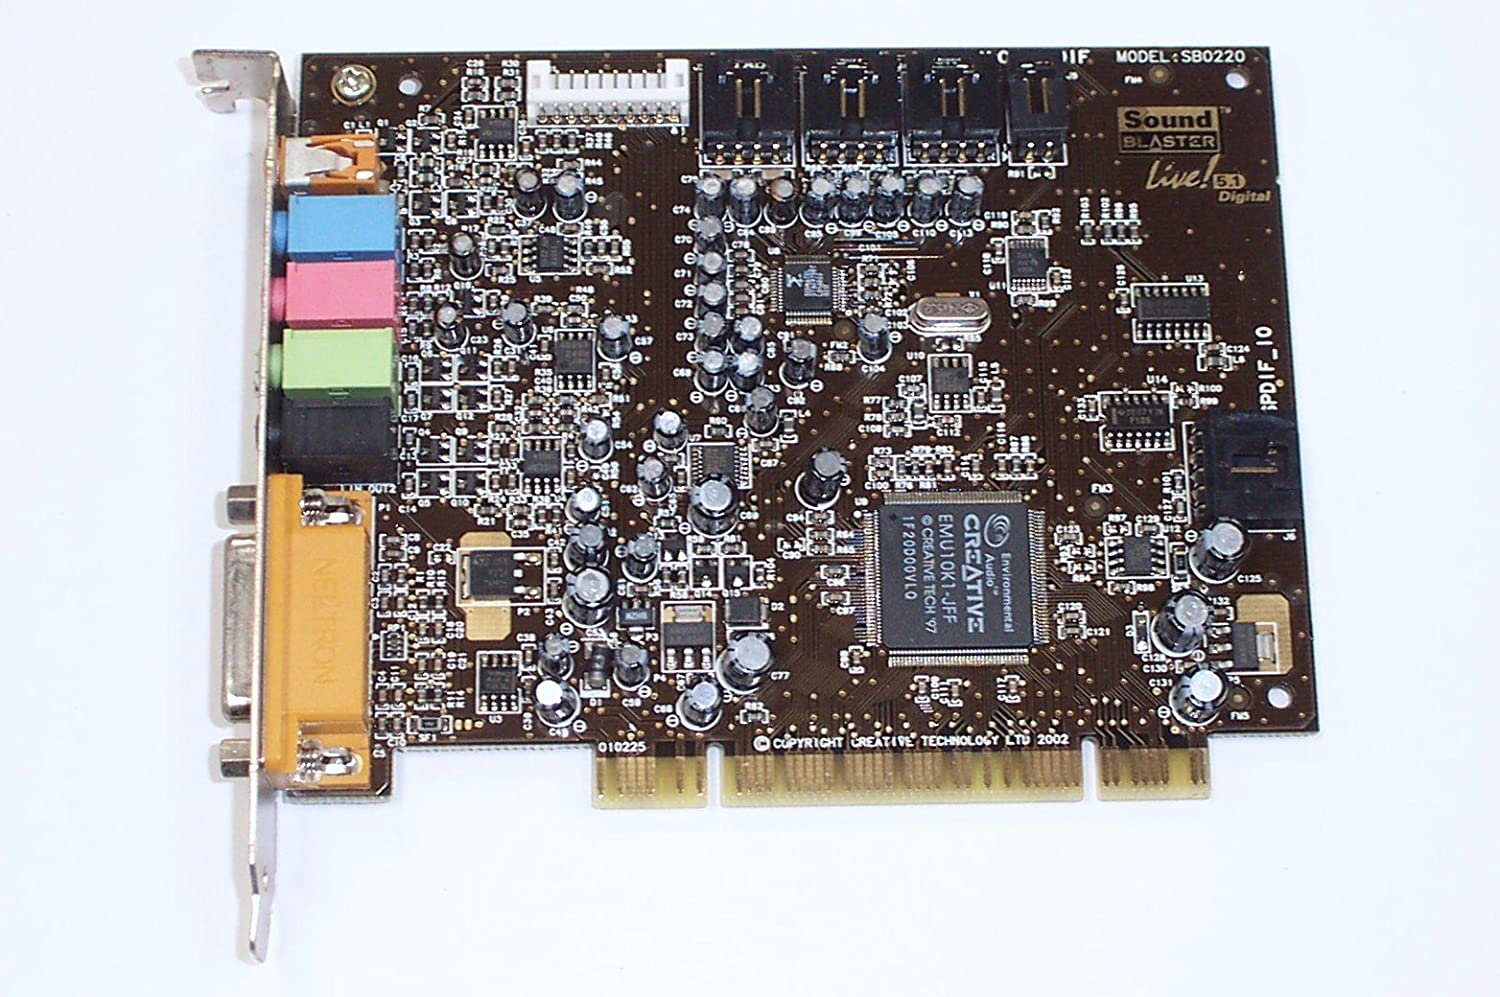 Amazon.com: Misc sb0220 Sound Blaster tarjeta PCI – ct4730 ...